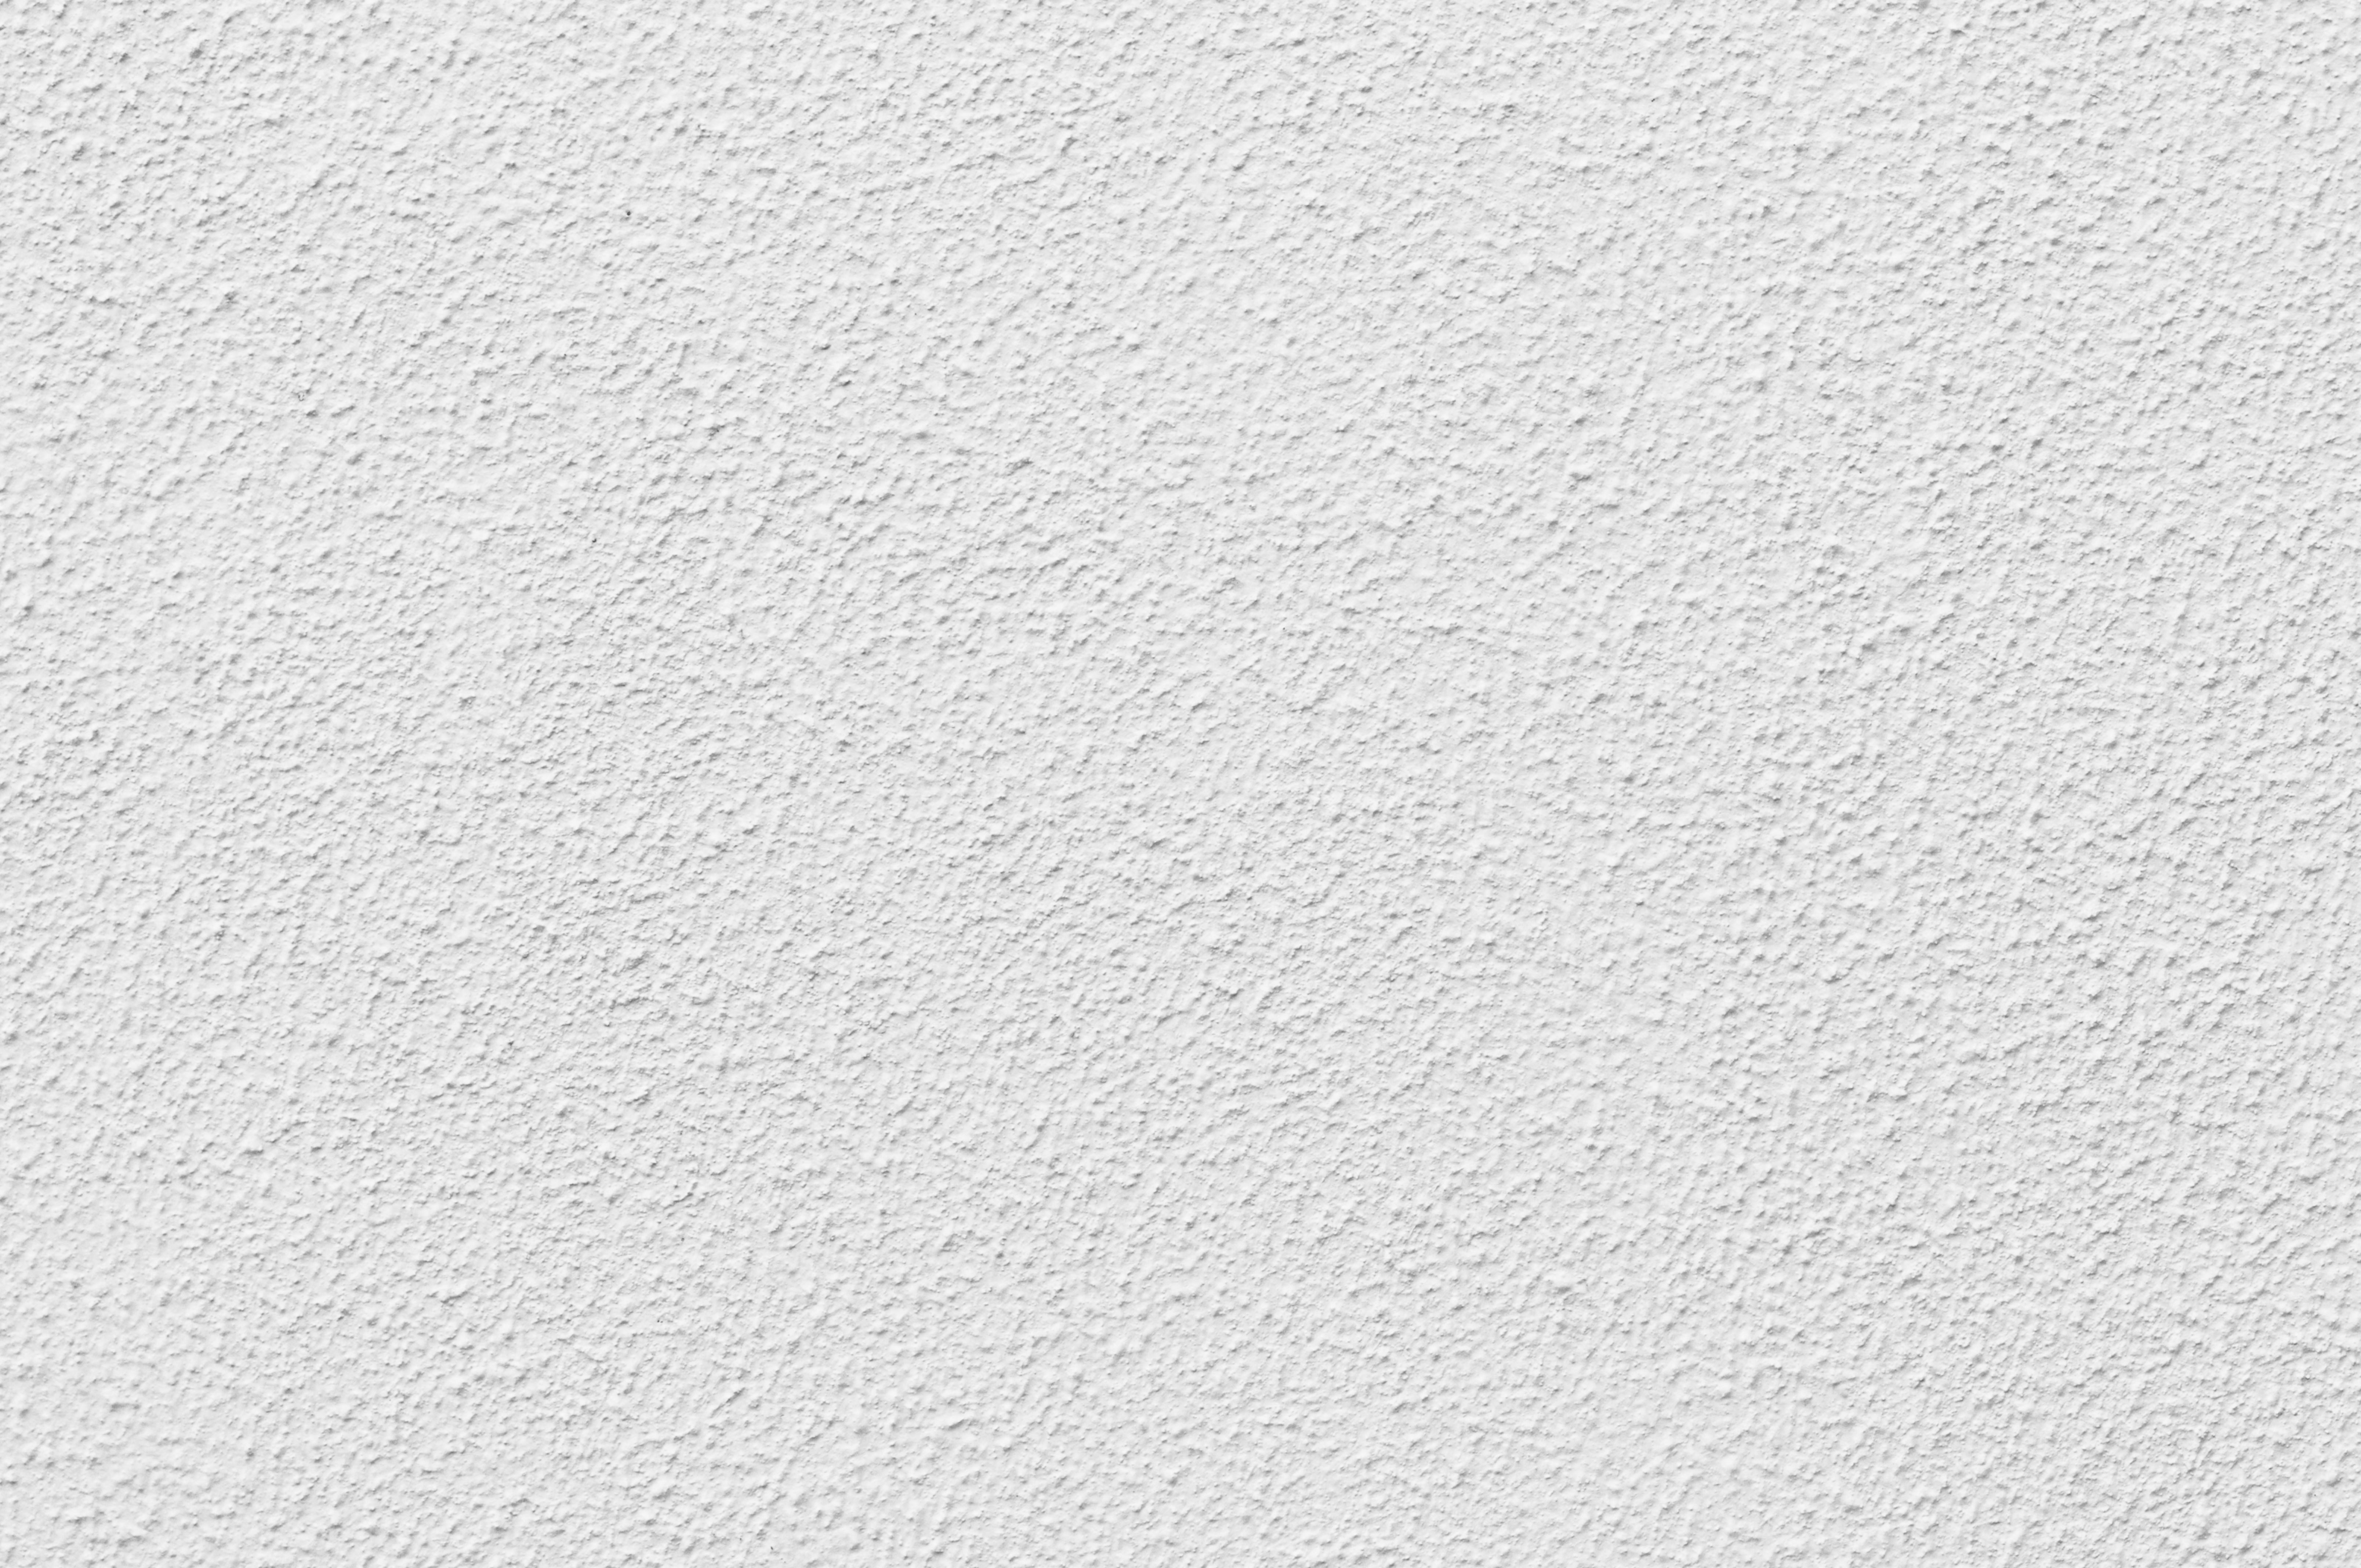 Small plaster wall texture with high quality details